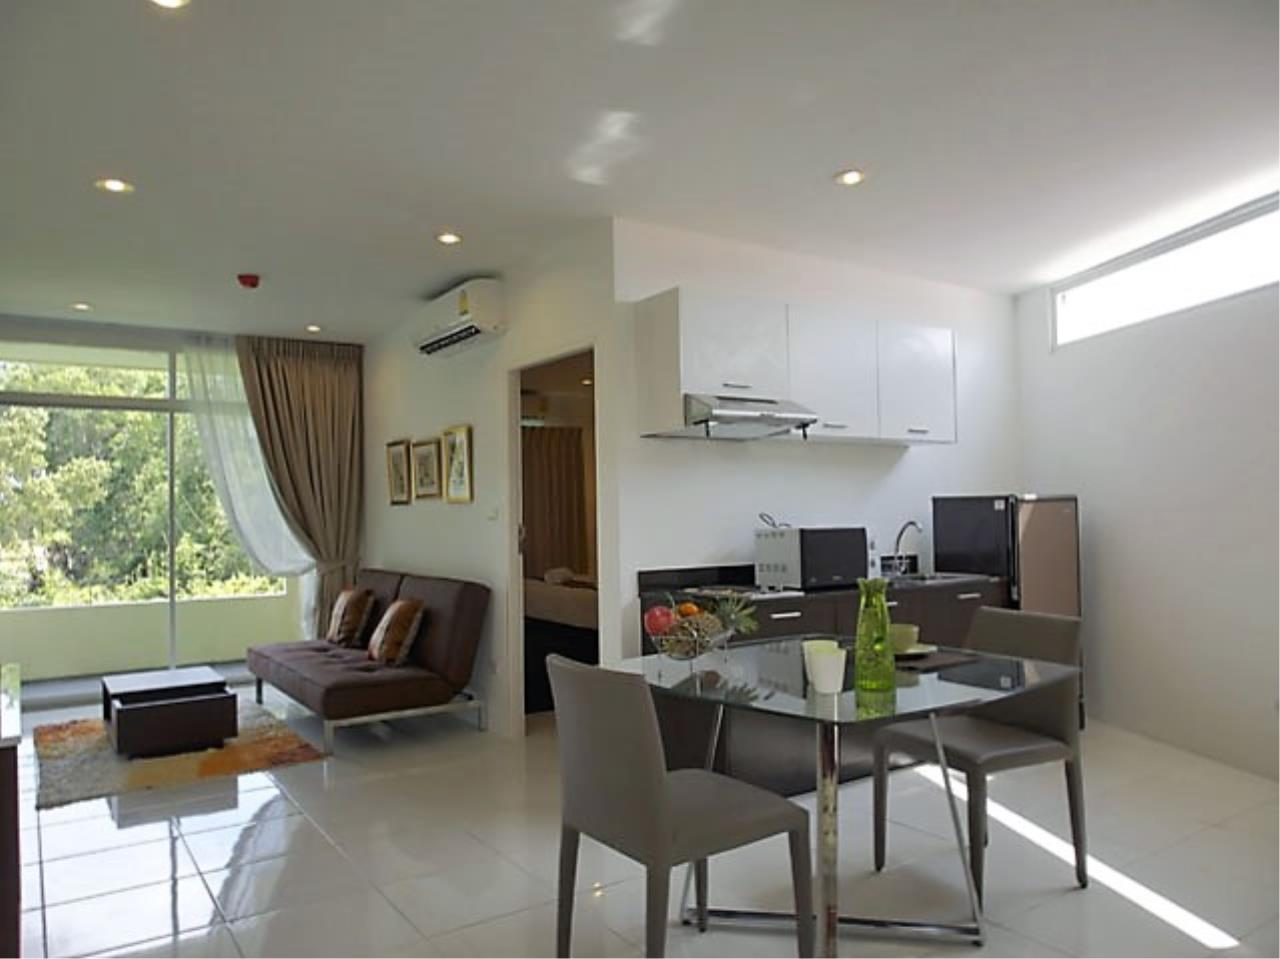 REAL Phuket  Agency's Investment Property - Fully Operational 7-Floor Condo Building with 22 Units 6